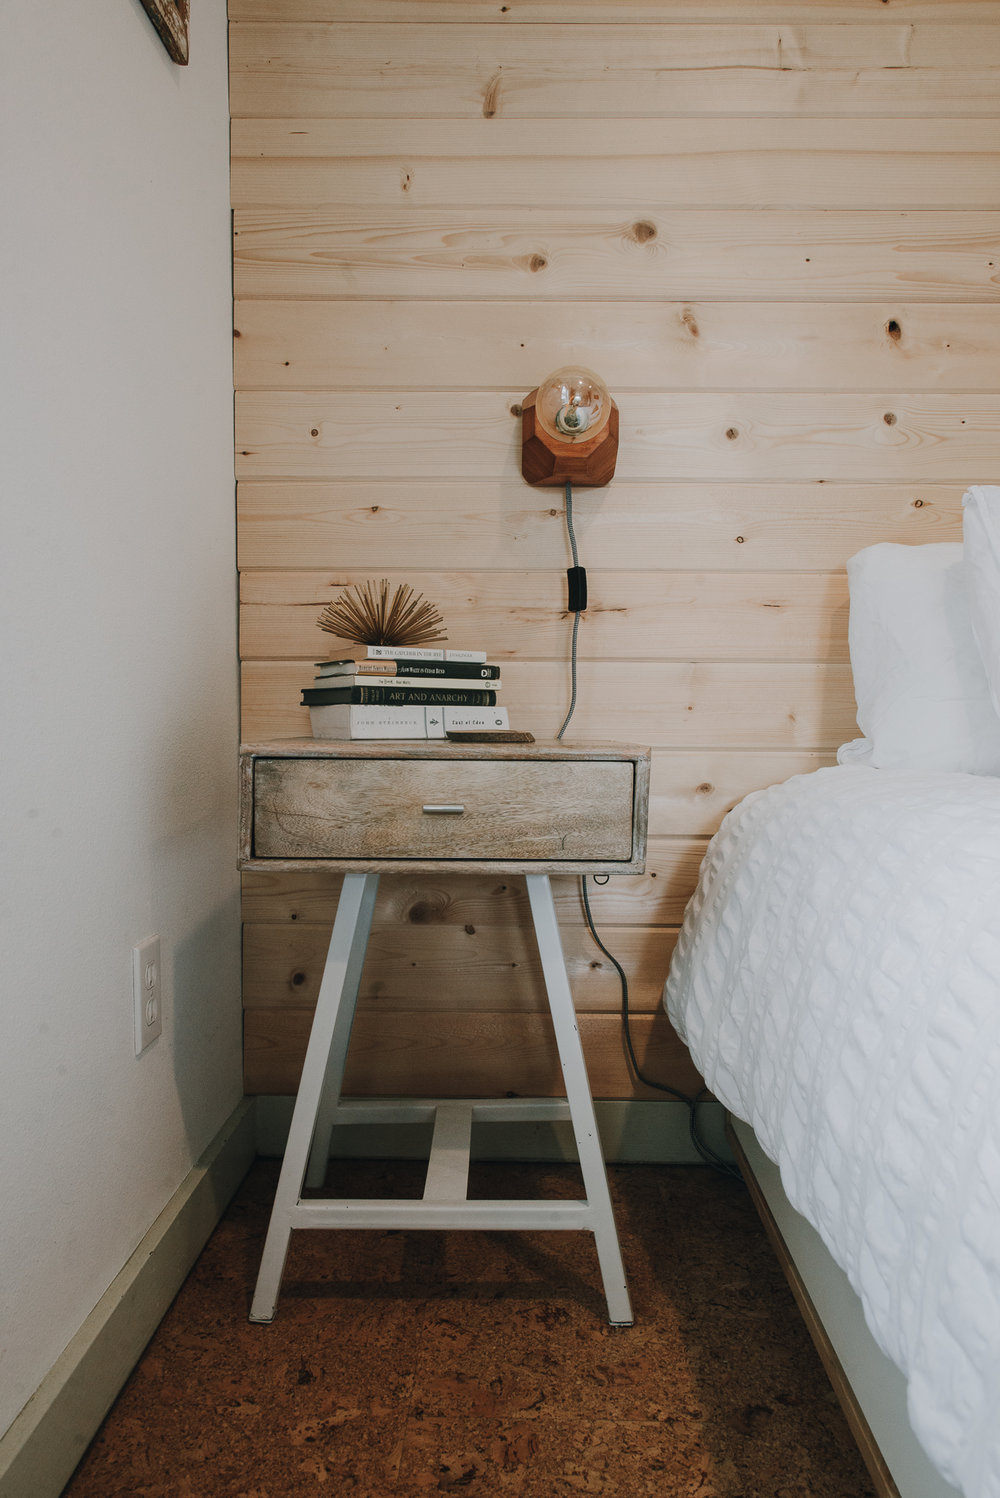 portland home, airbnb, rental staging, rental styling, vacation rental, modern design, interior design, home staging, shiplap, home decor, home styling